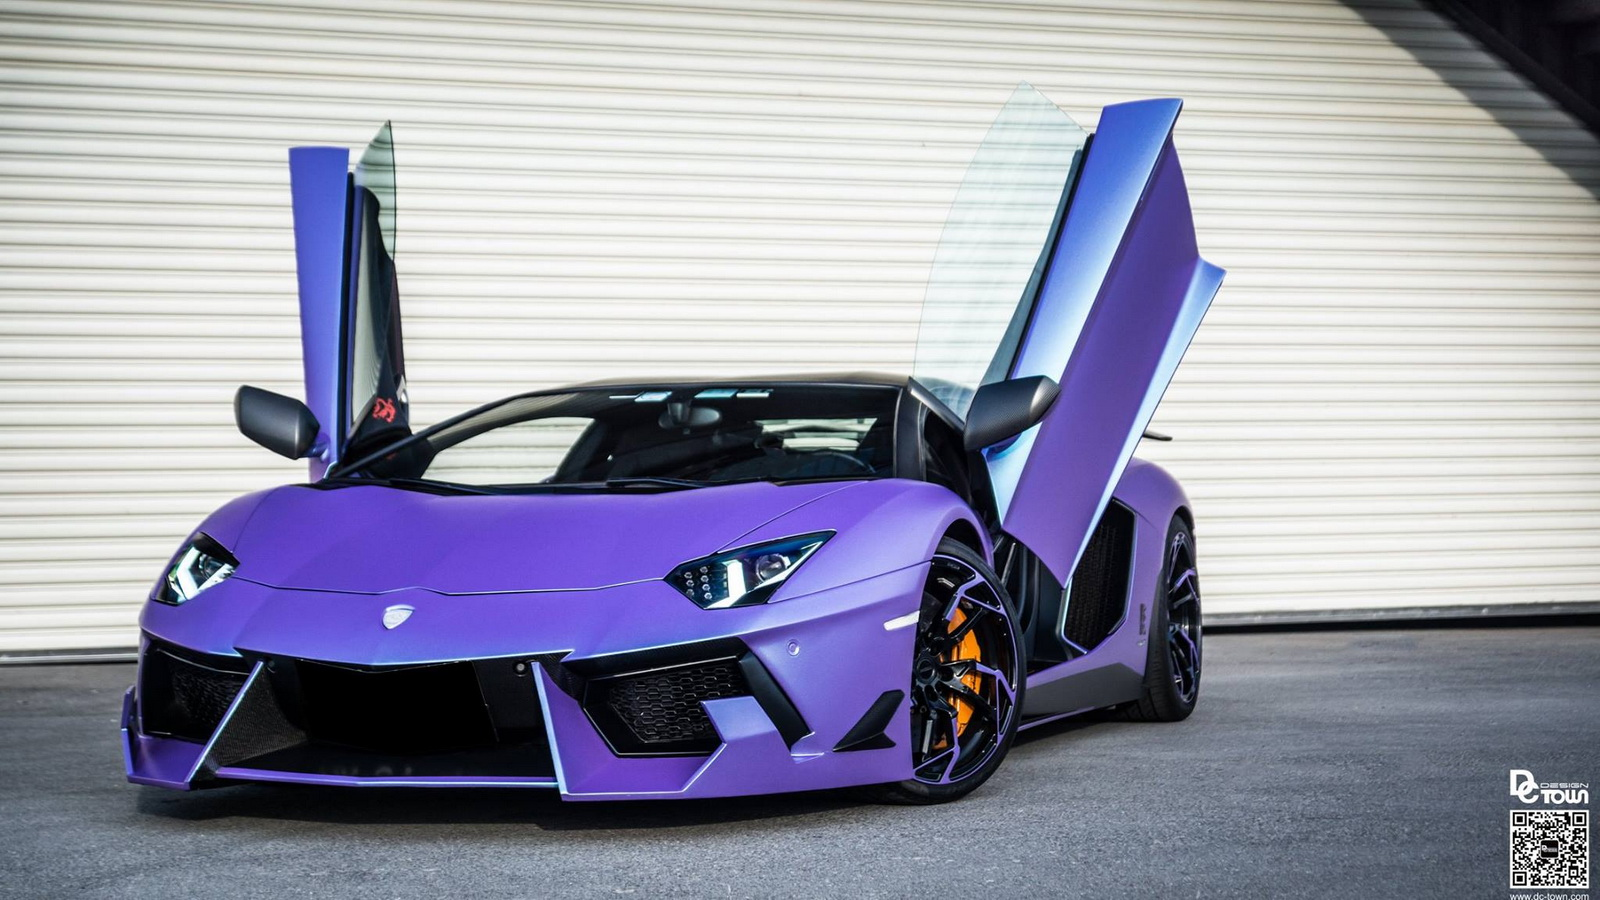 Dmc Lamborghini Aventador Is A Raging Purple Haze Carscoops